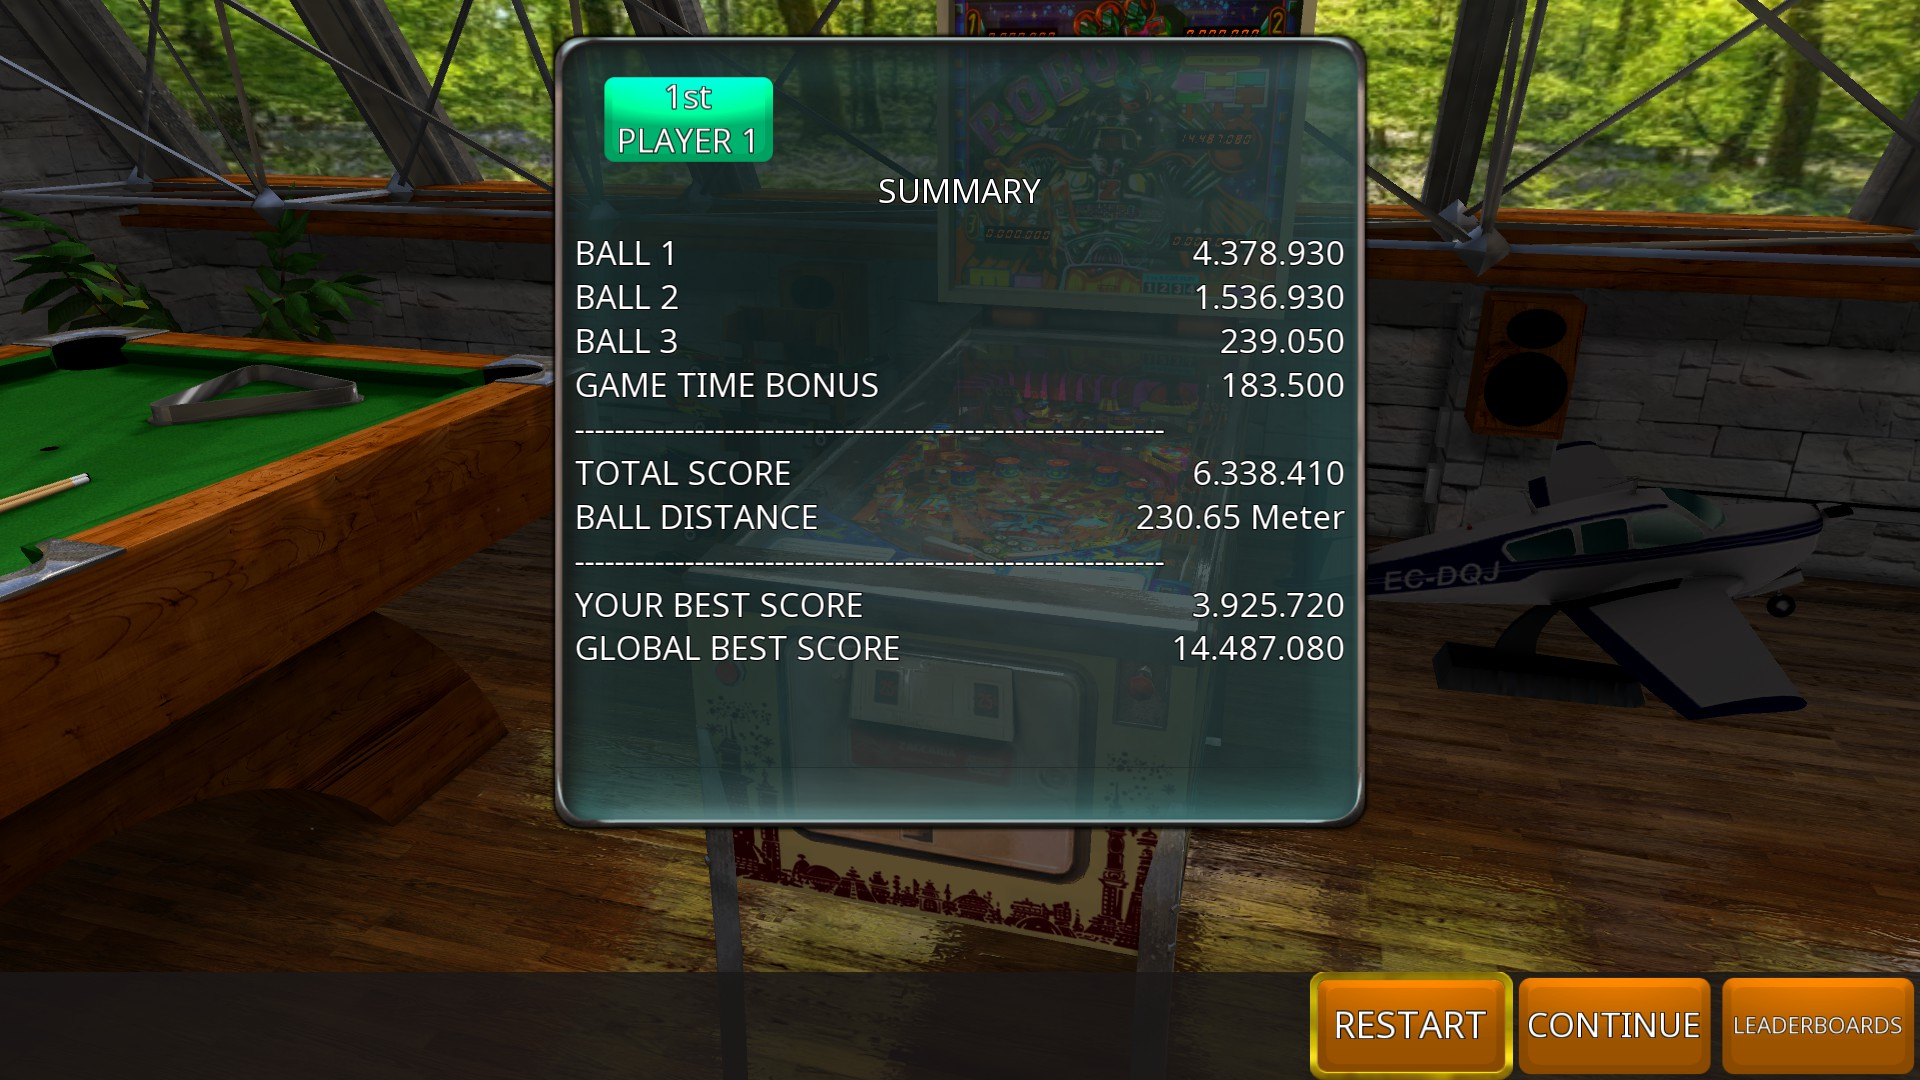 GTibel: Zaccaria Pinball: Robot [3 balls] (PC) 6,338,410 points on 2018-08-16 07:49:26